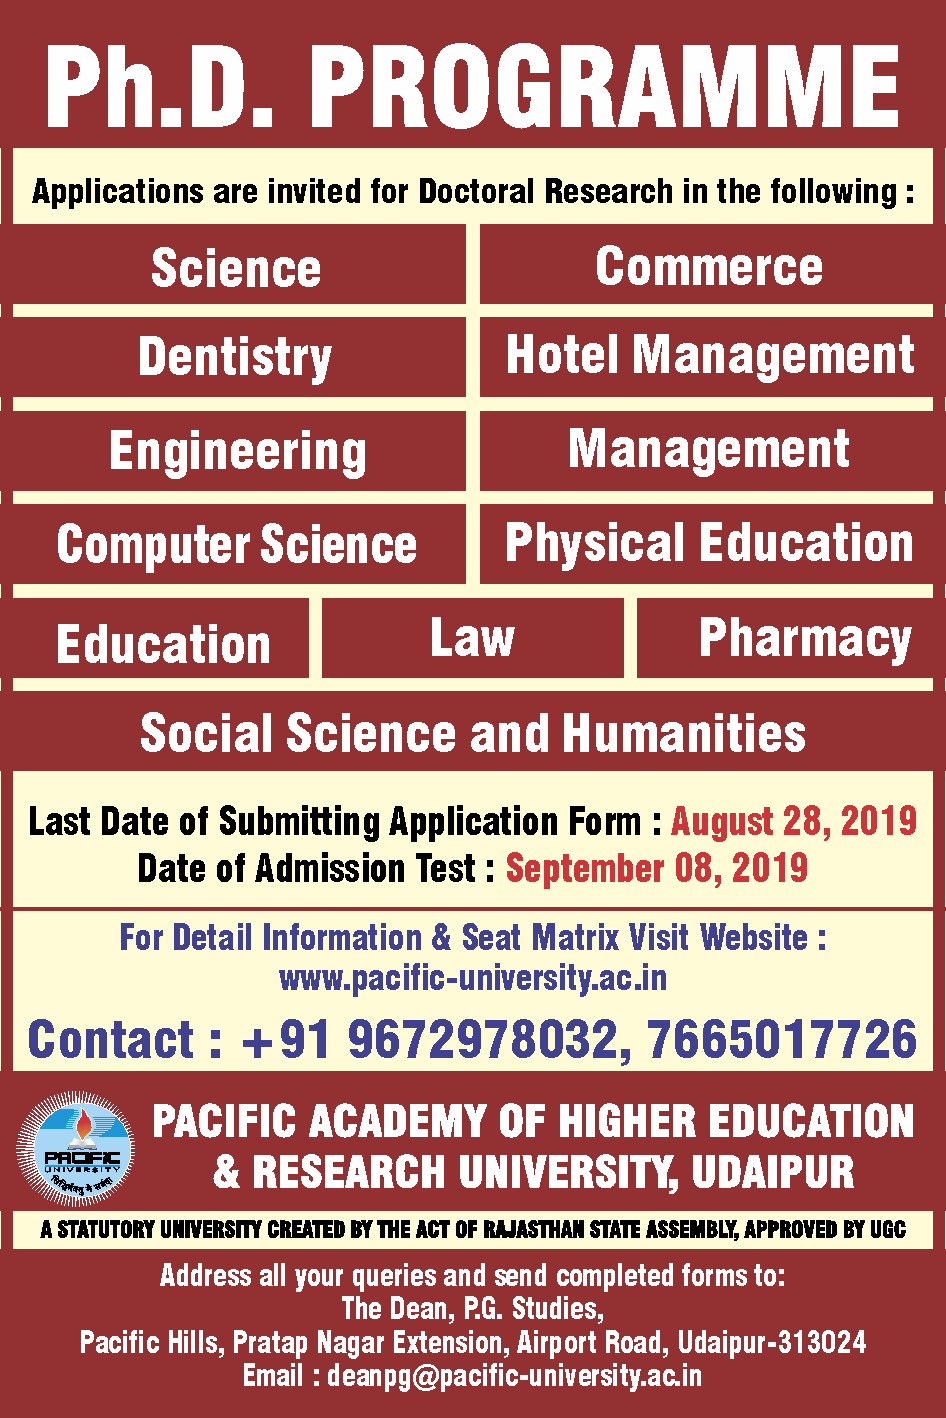 Pacific University, Udaipur: Top College/University in